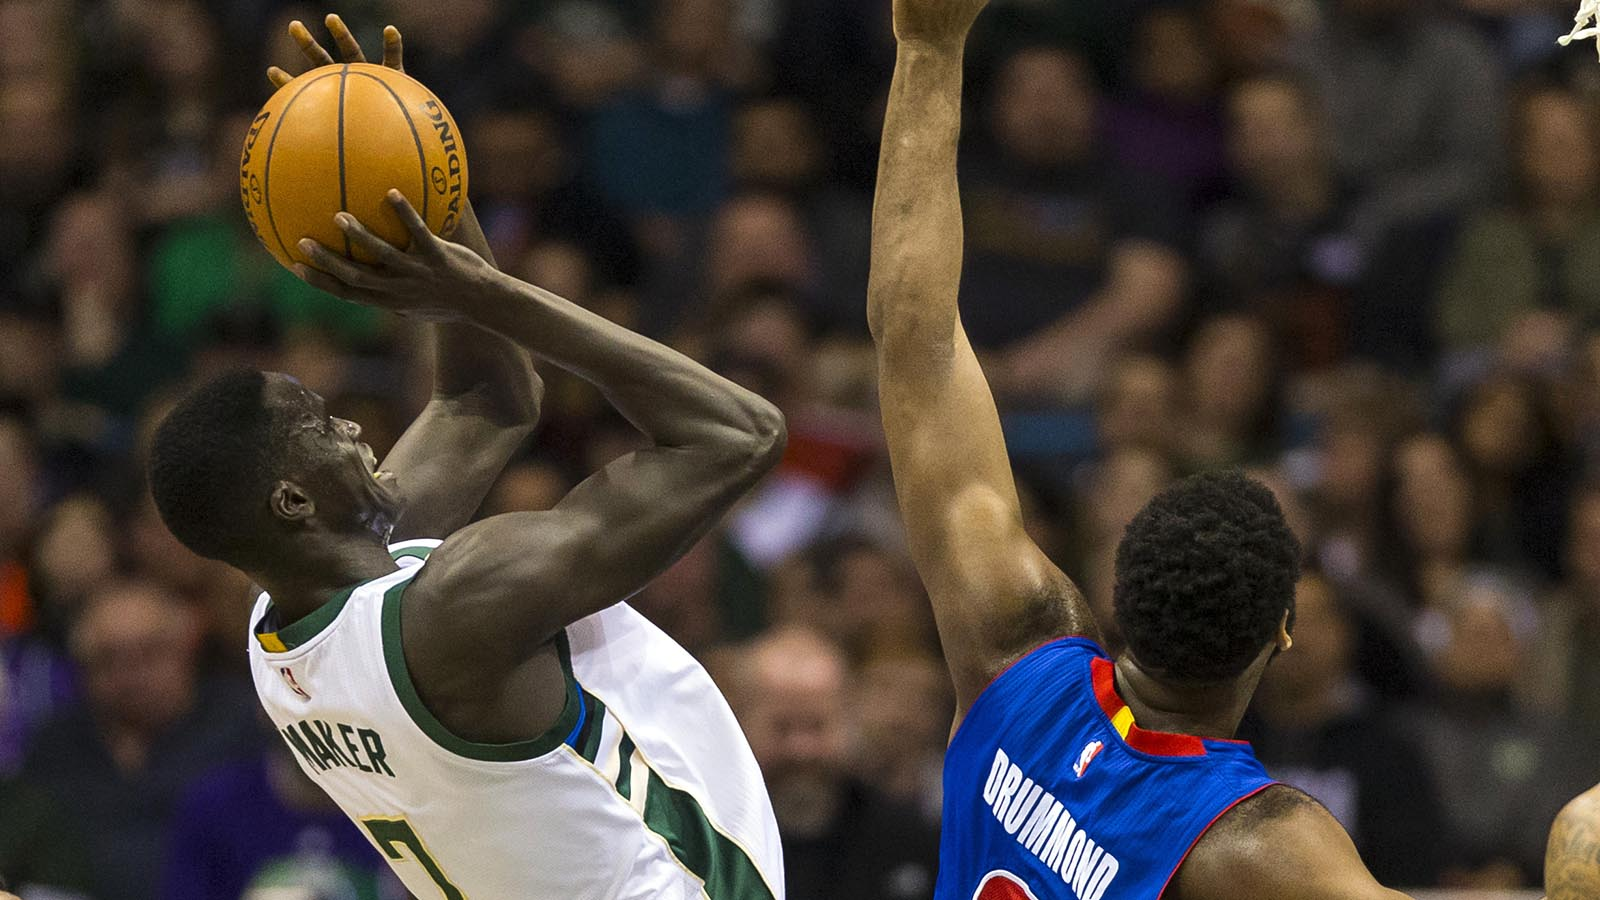 Maker sets career high, leads Bucks to overtime victory